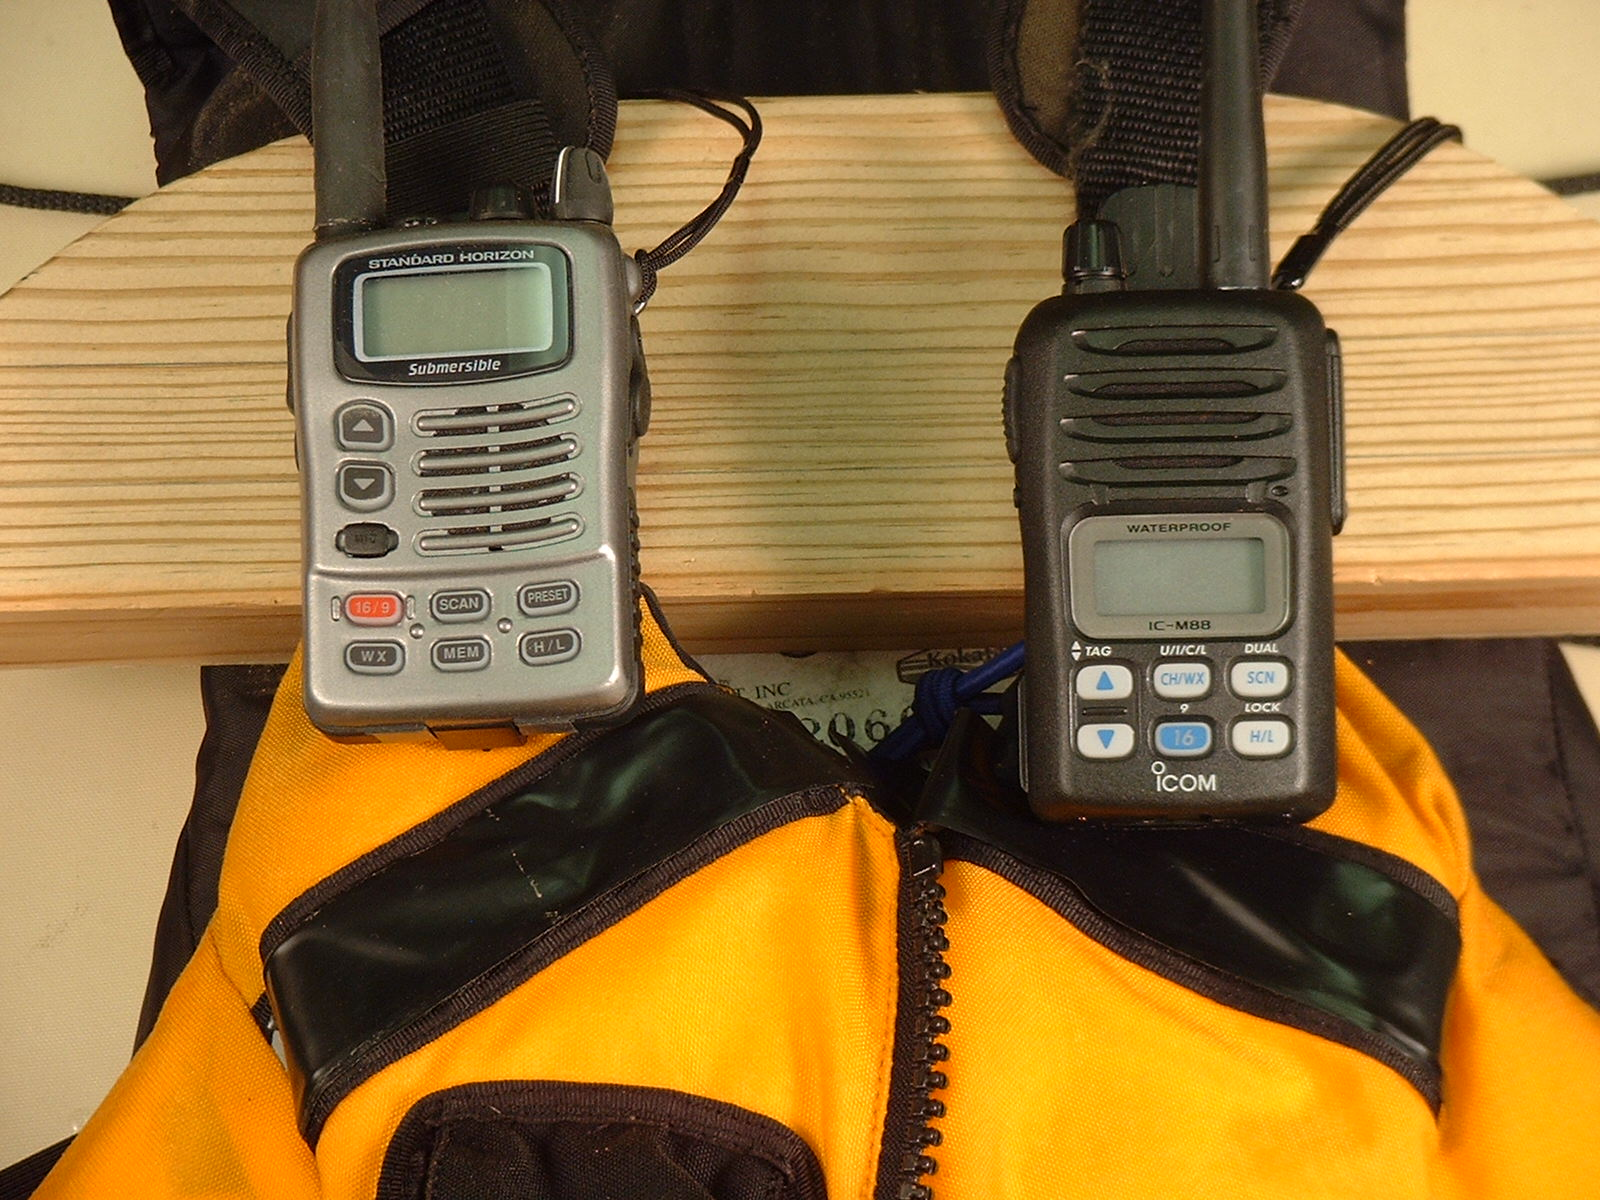 Two VHF radios mounted to shoulder straps with their antennas toward the outside.